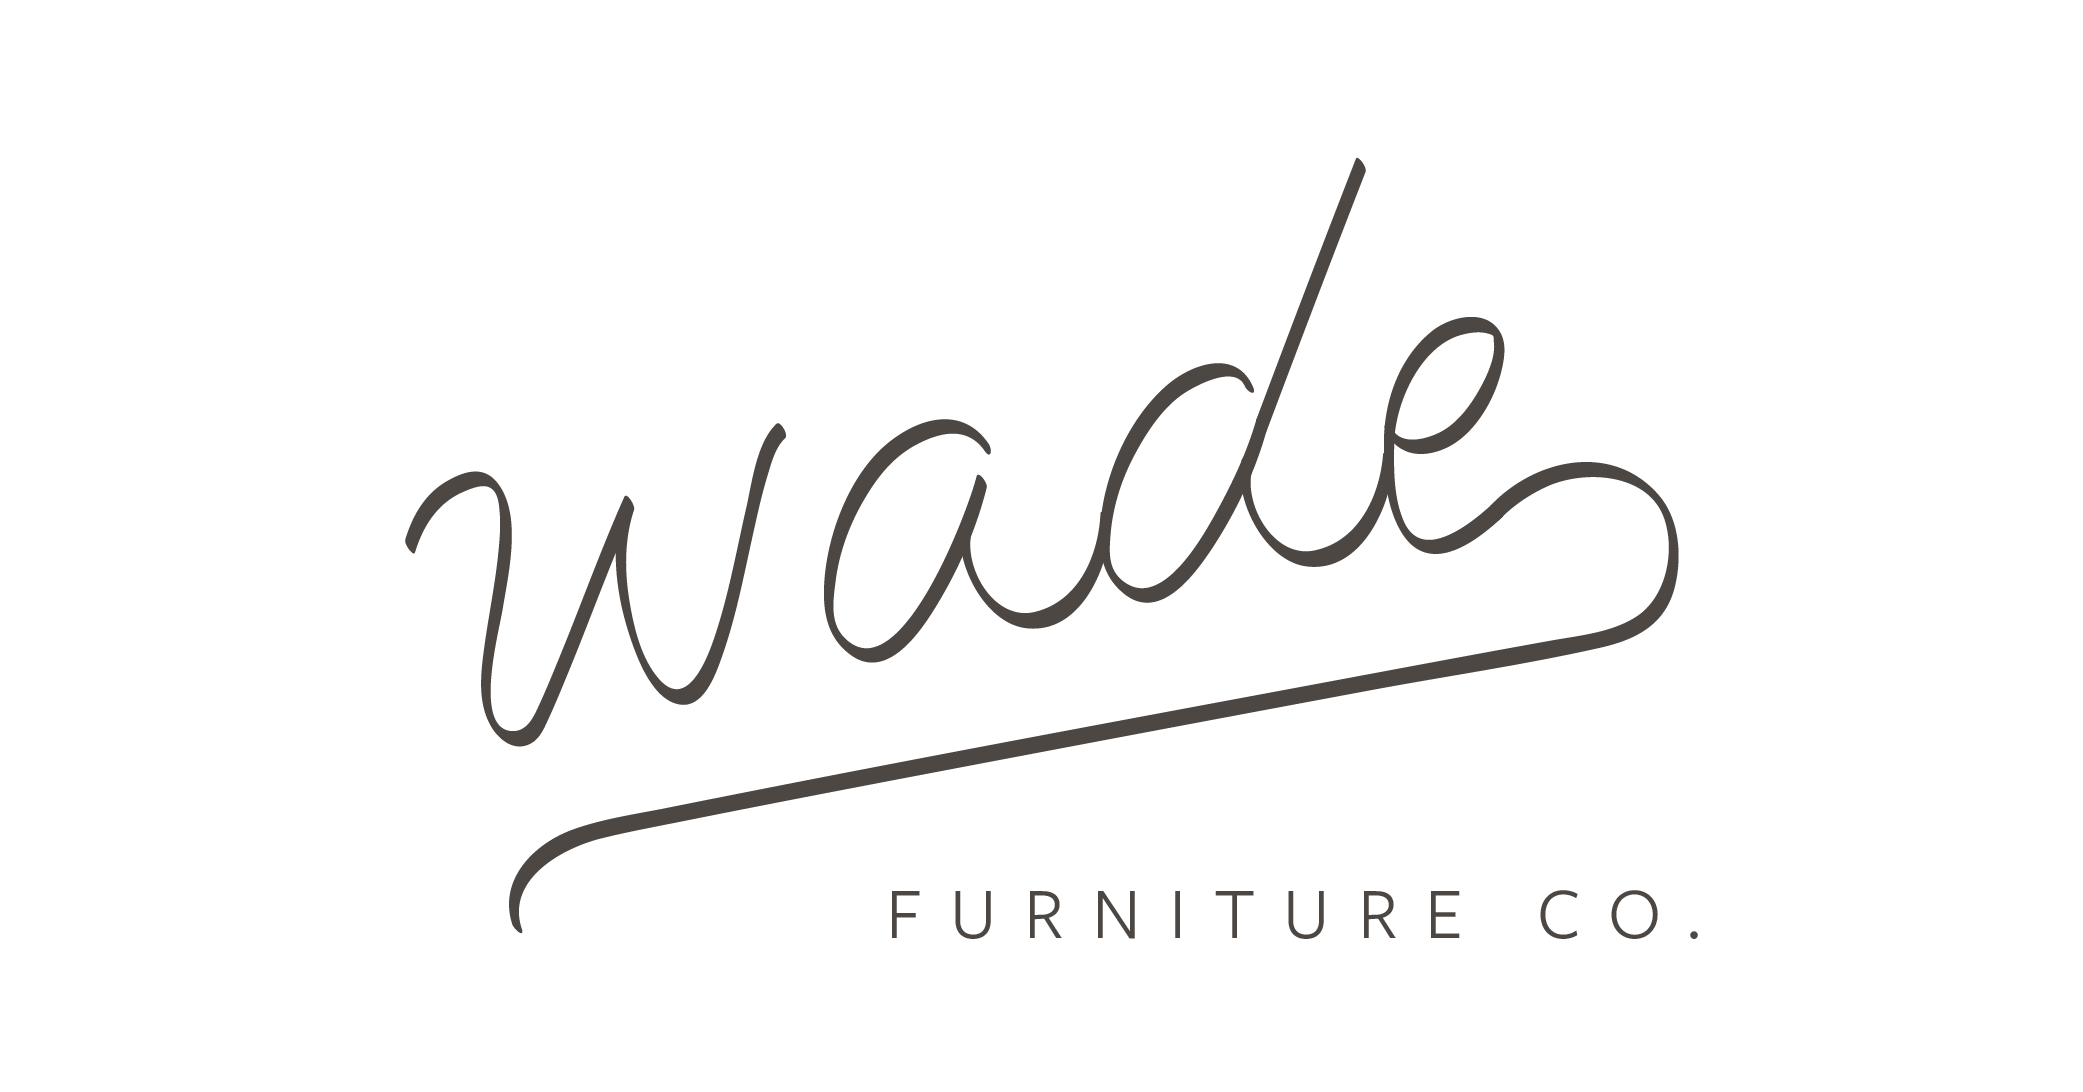 Wade Furniture Co.